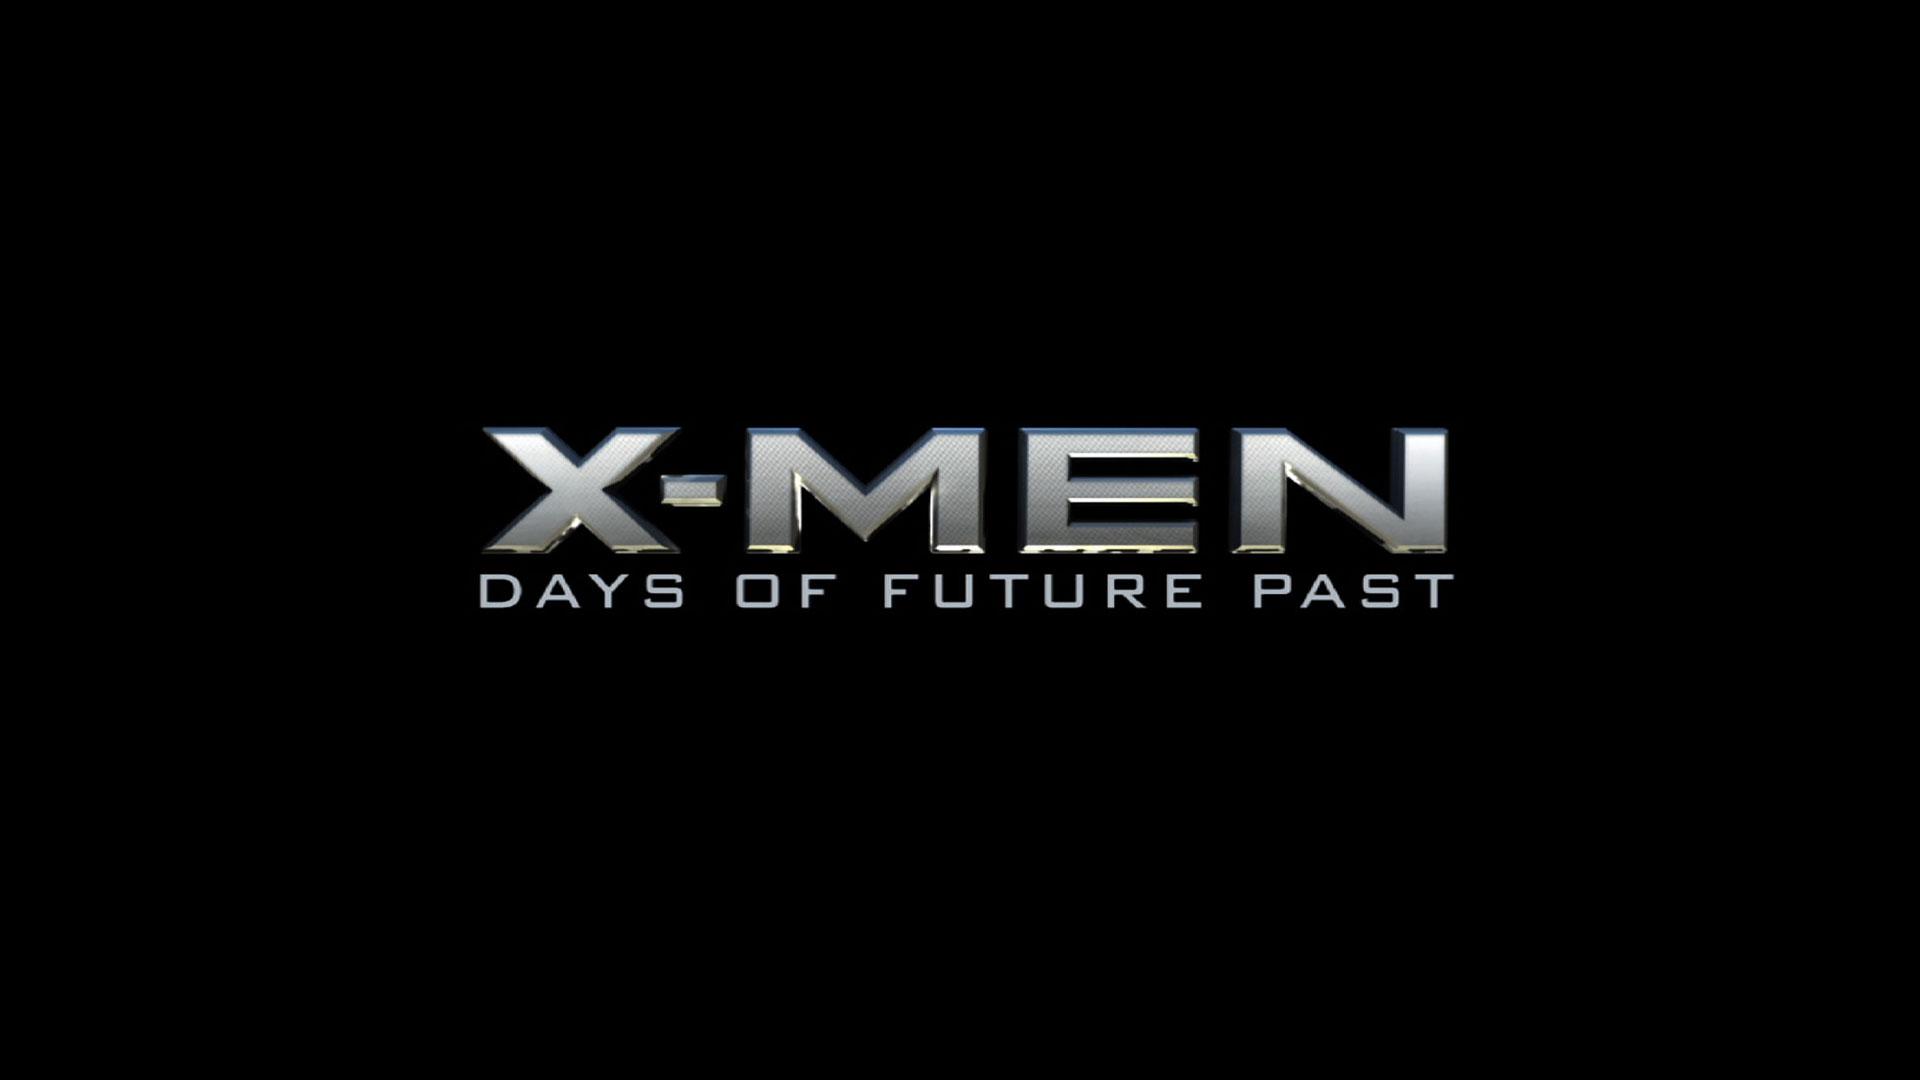 2014 wolverine wallpapers x men days of future past logo wallpaper hdX Men Logo Wallpaper